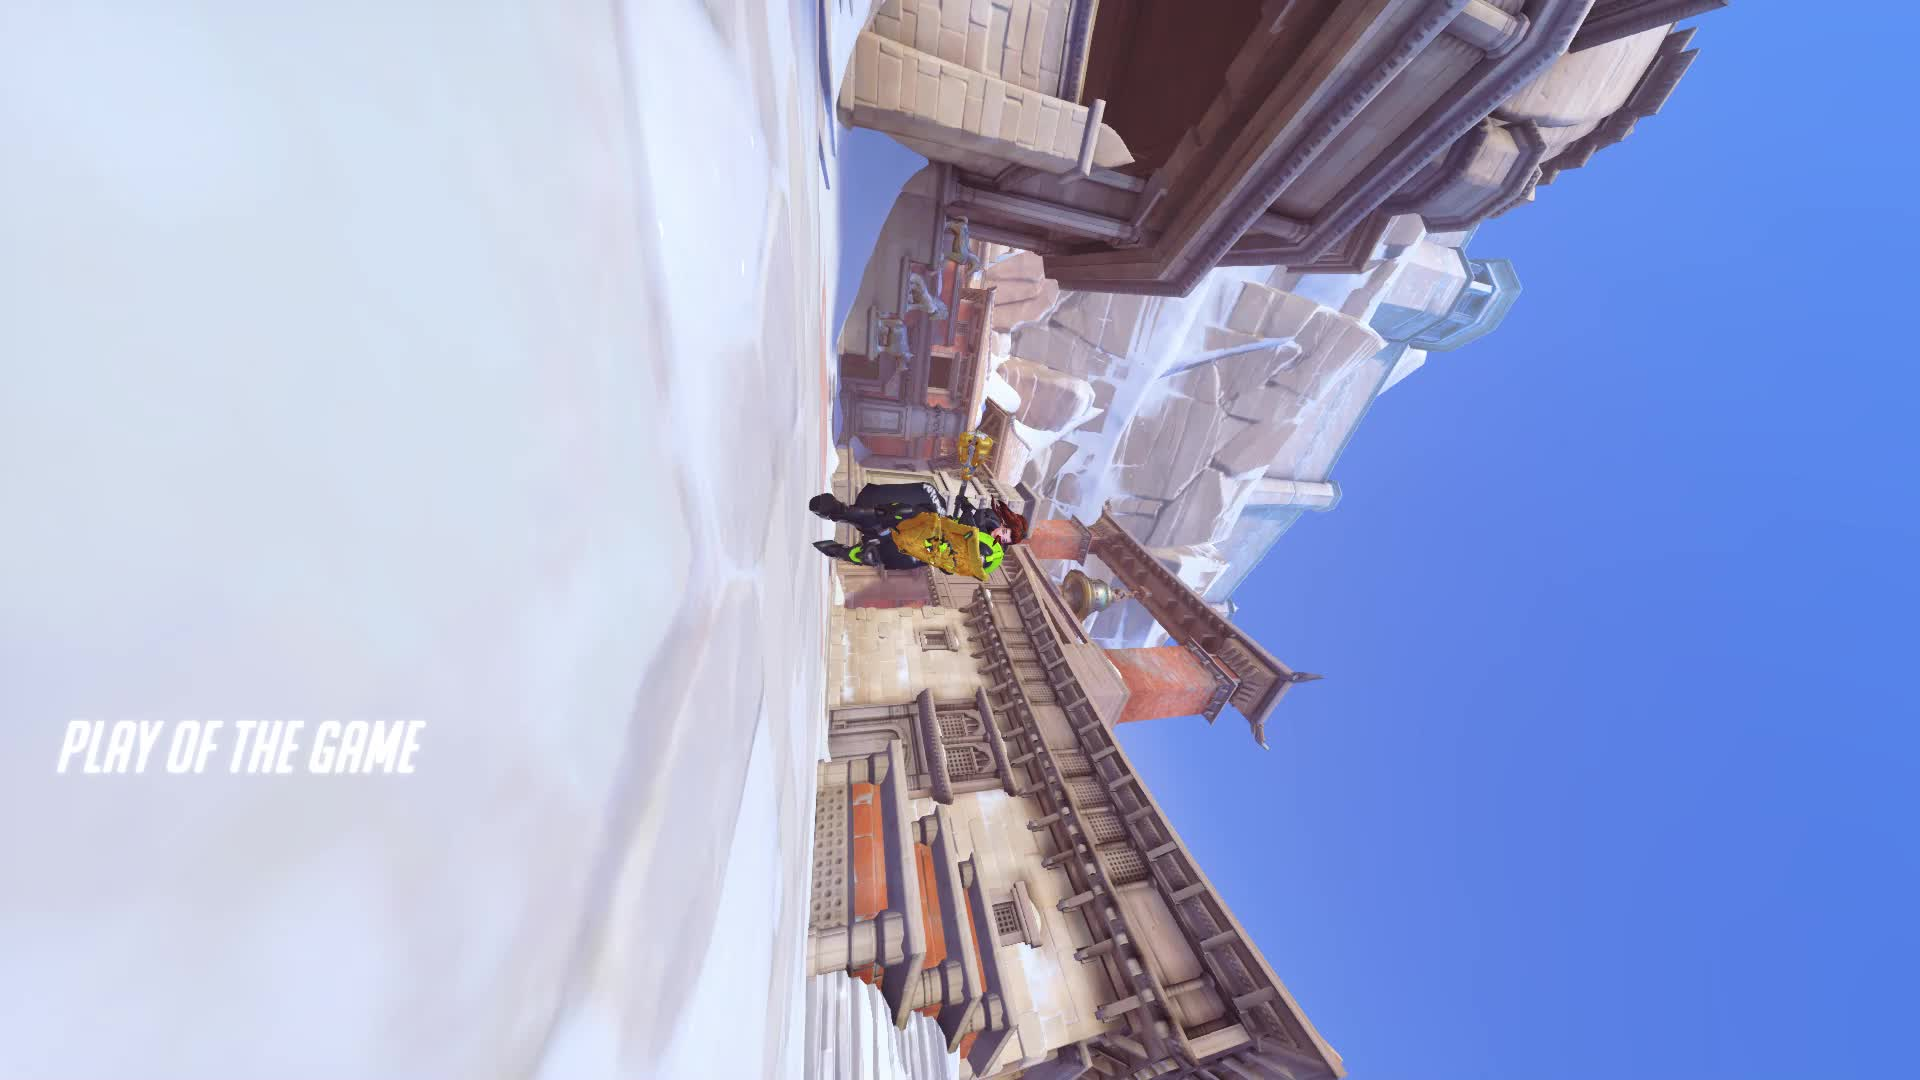 Brigette, Overwatch, POTG, Manical Laughing GIFs